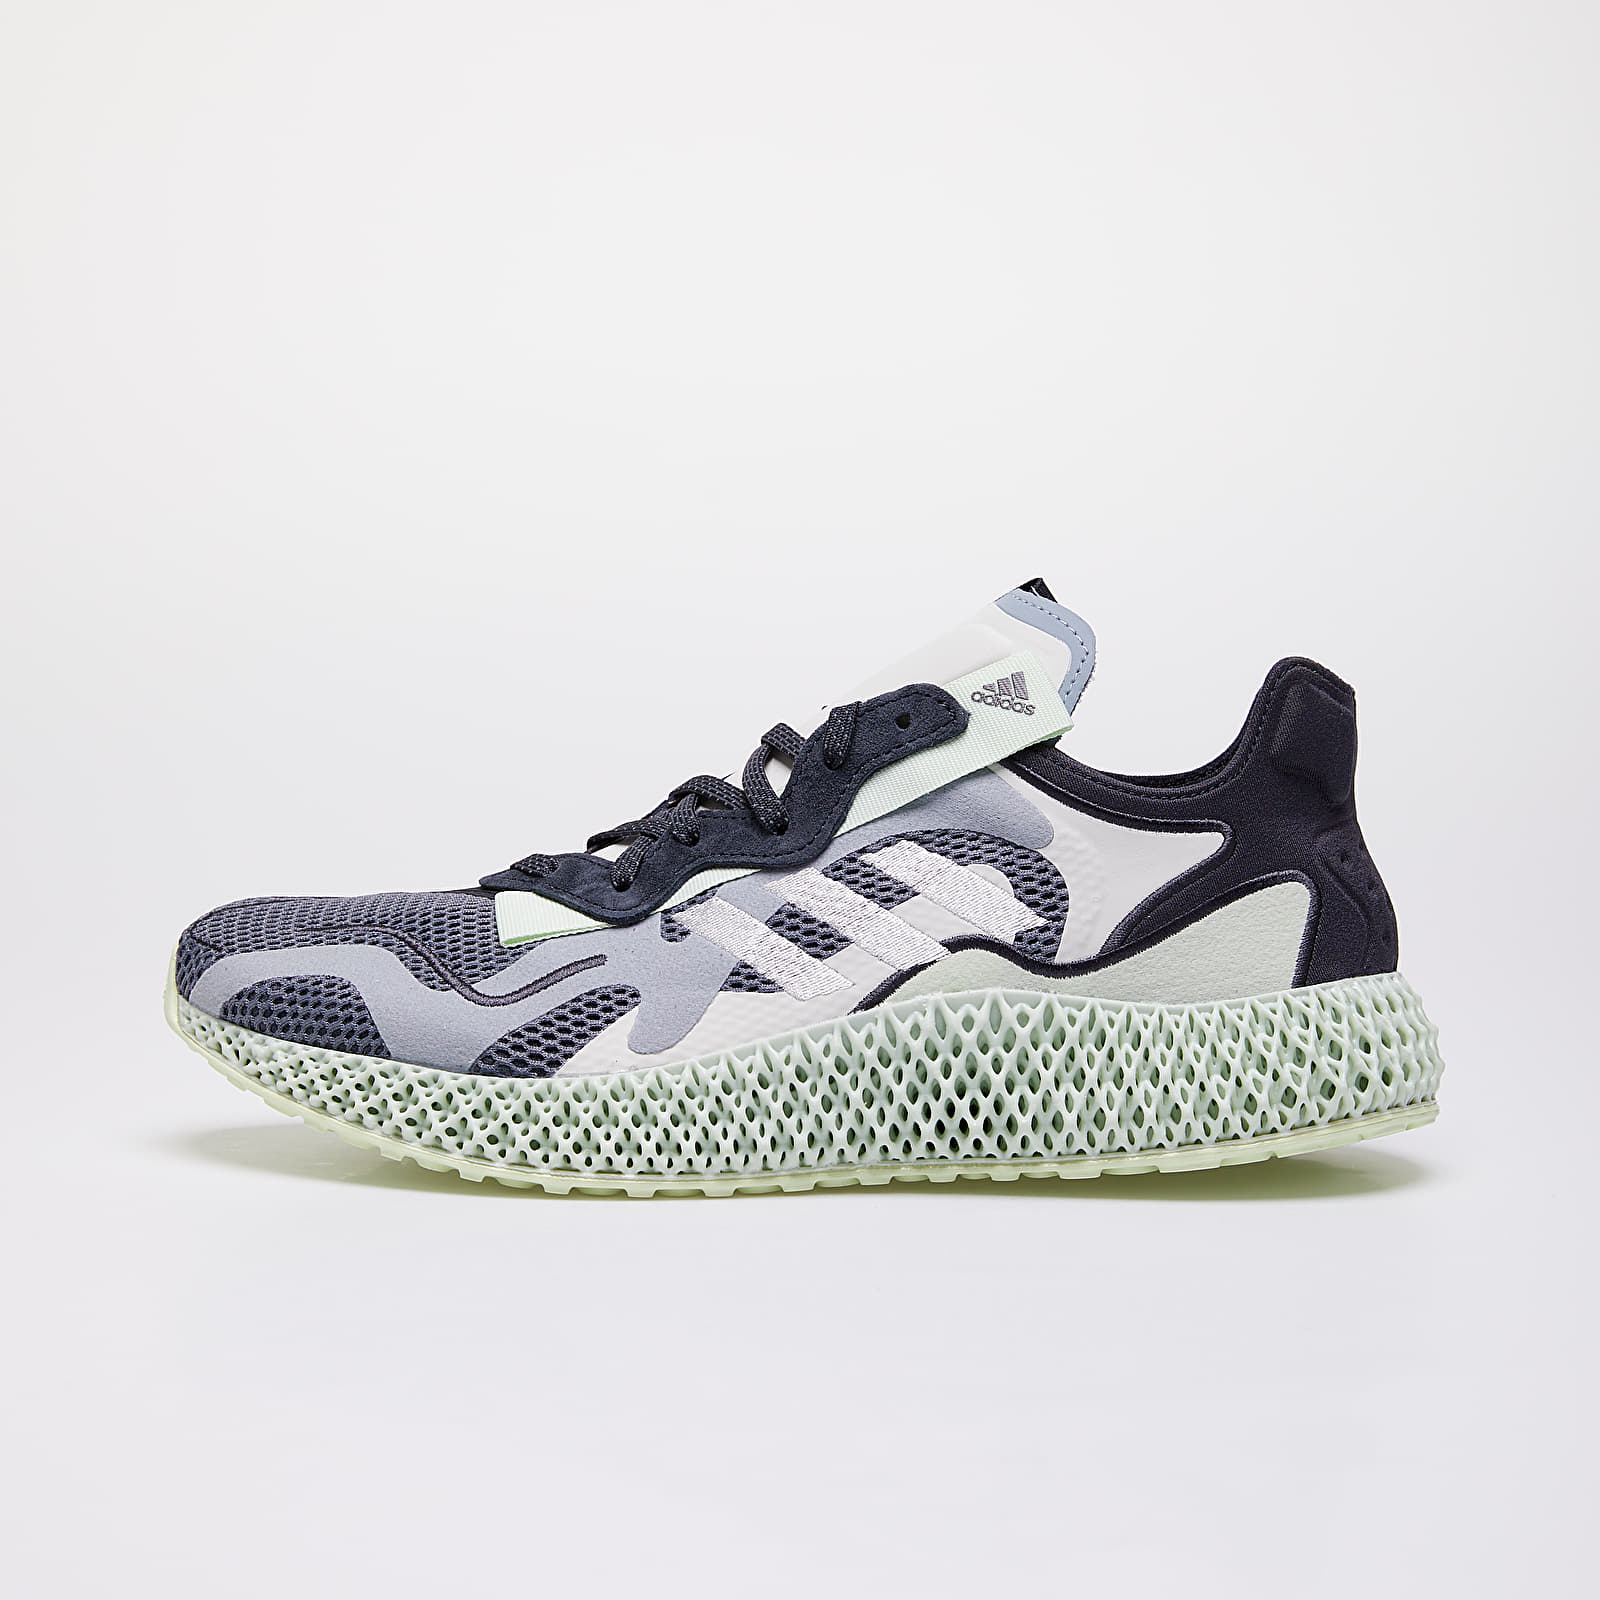 Chaussures et baskets homme adidas Consortium Runner EVO 4D Onix/ White/ Light Green